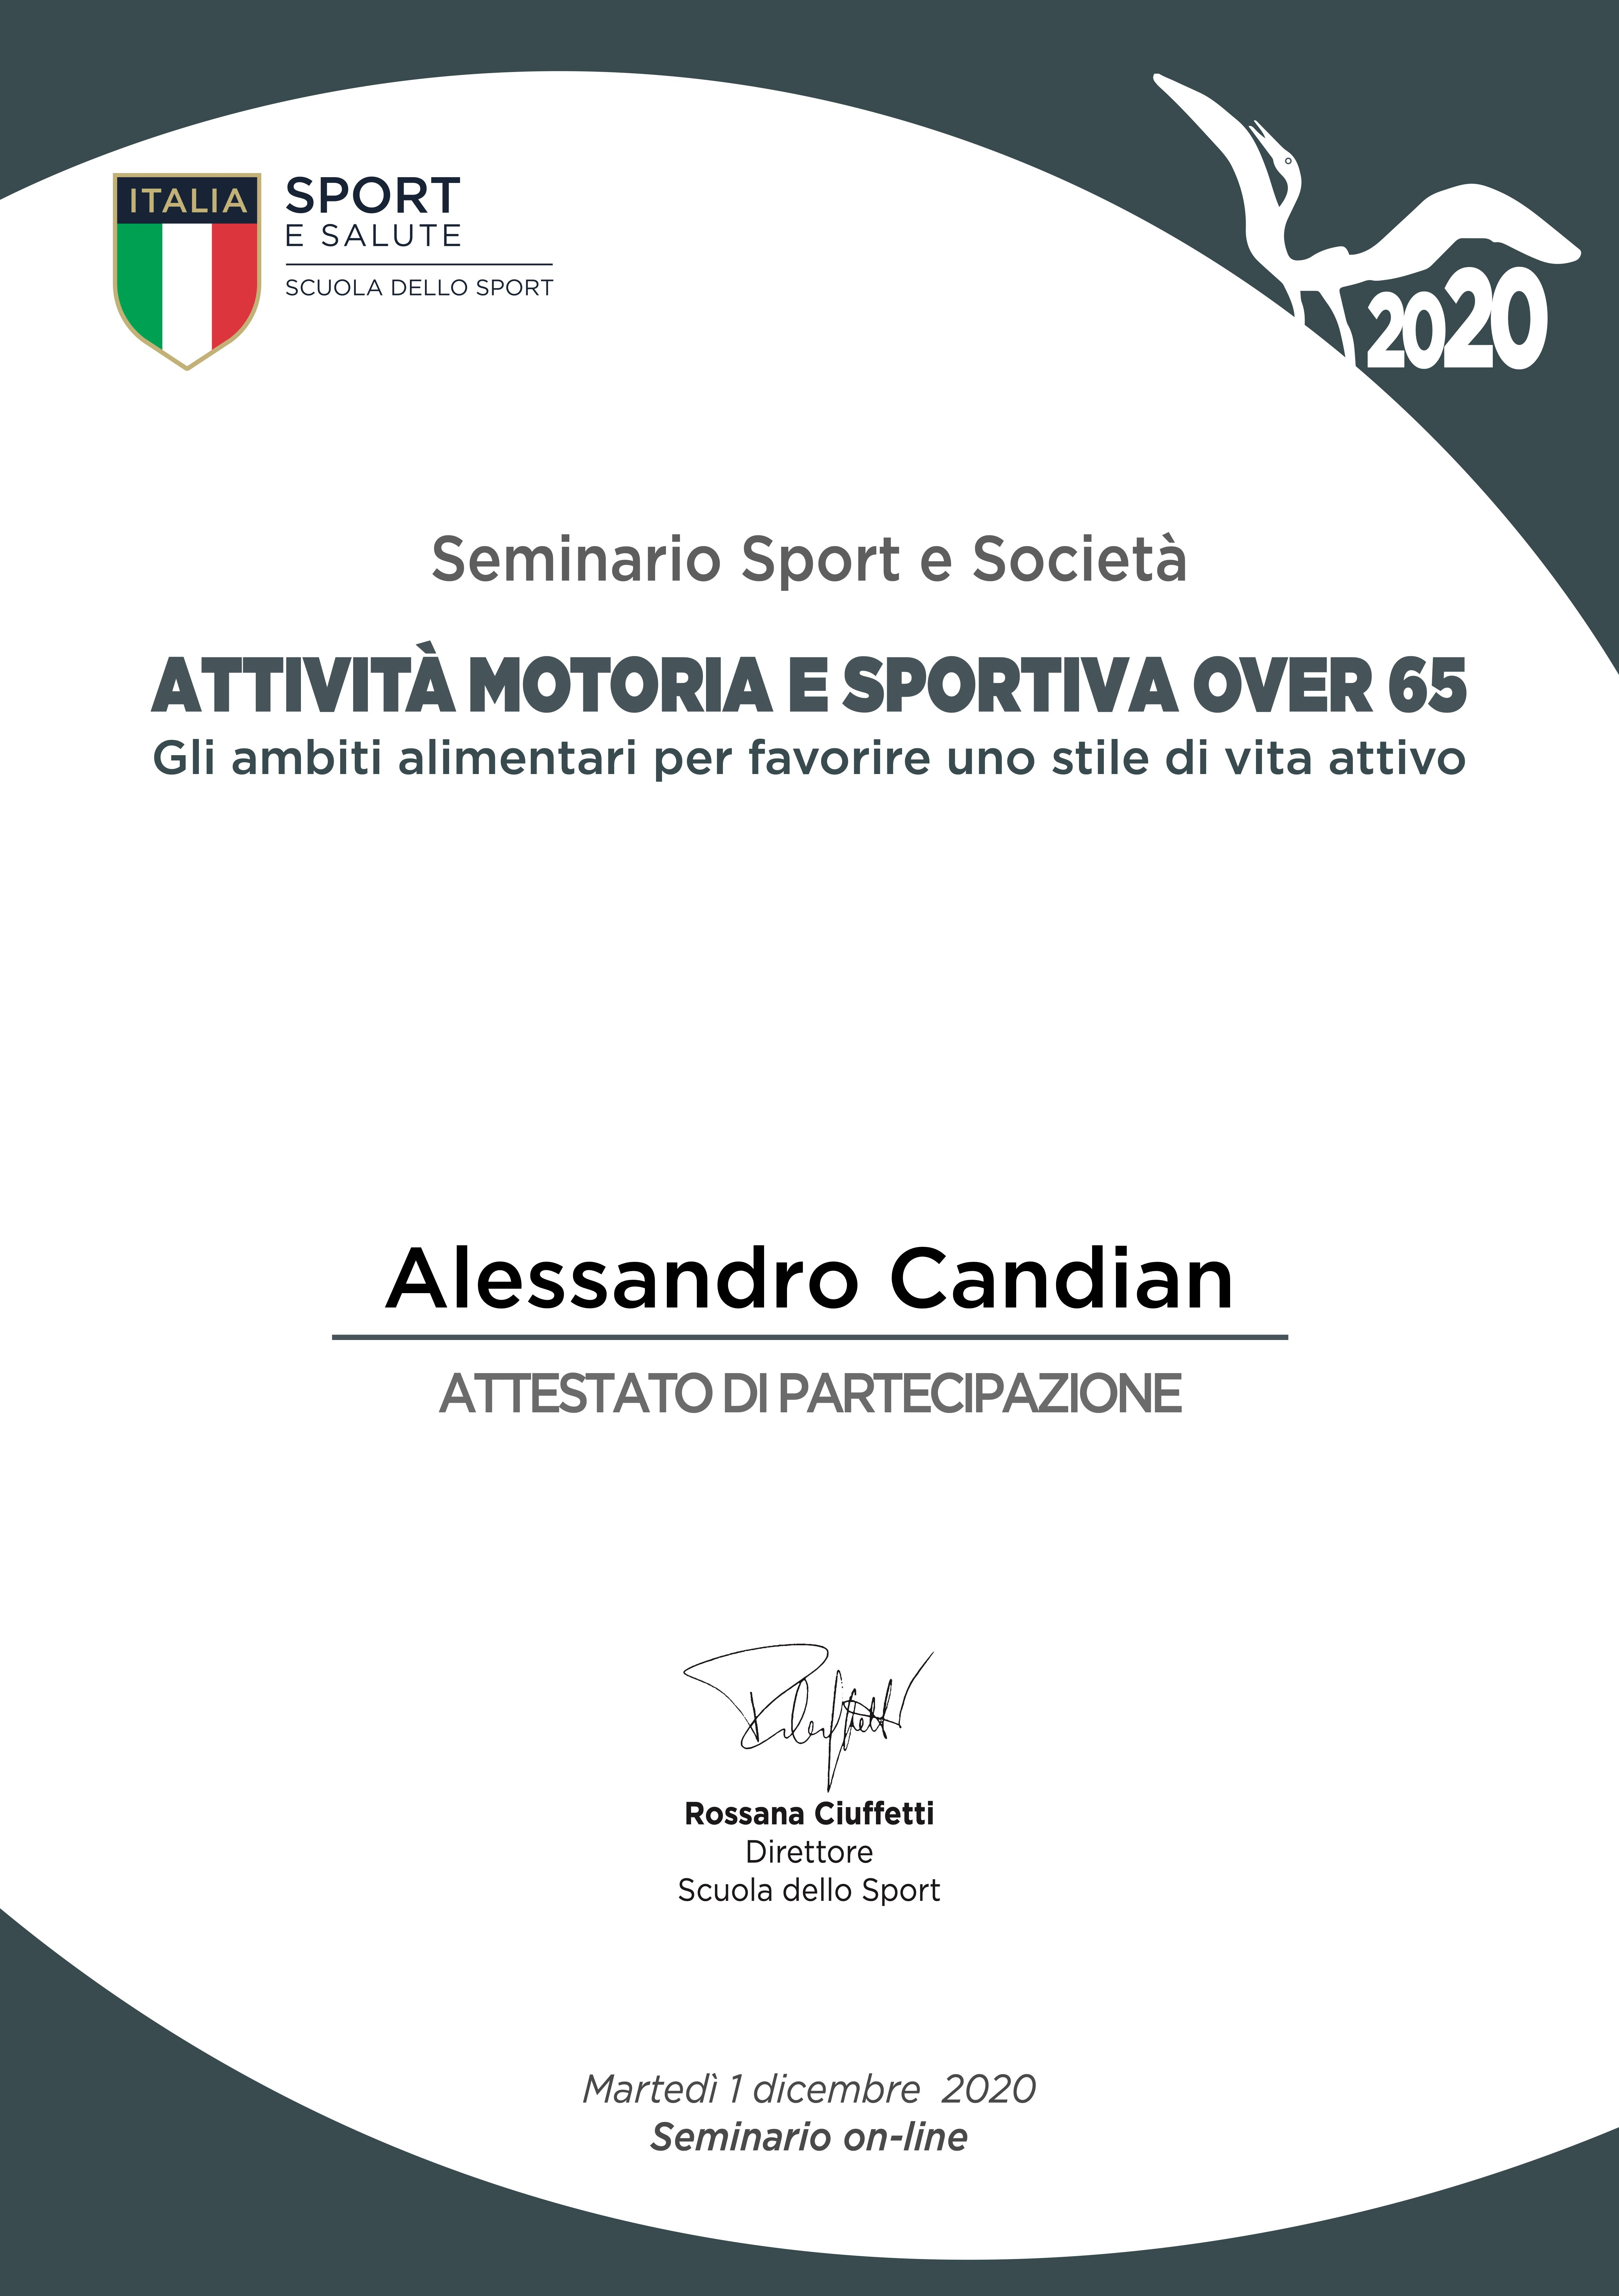 Alessandro_Candian (2)